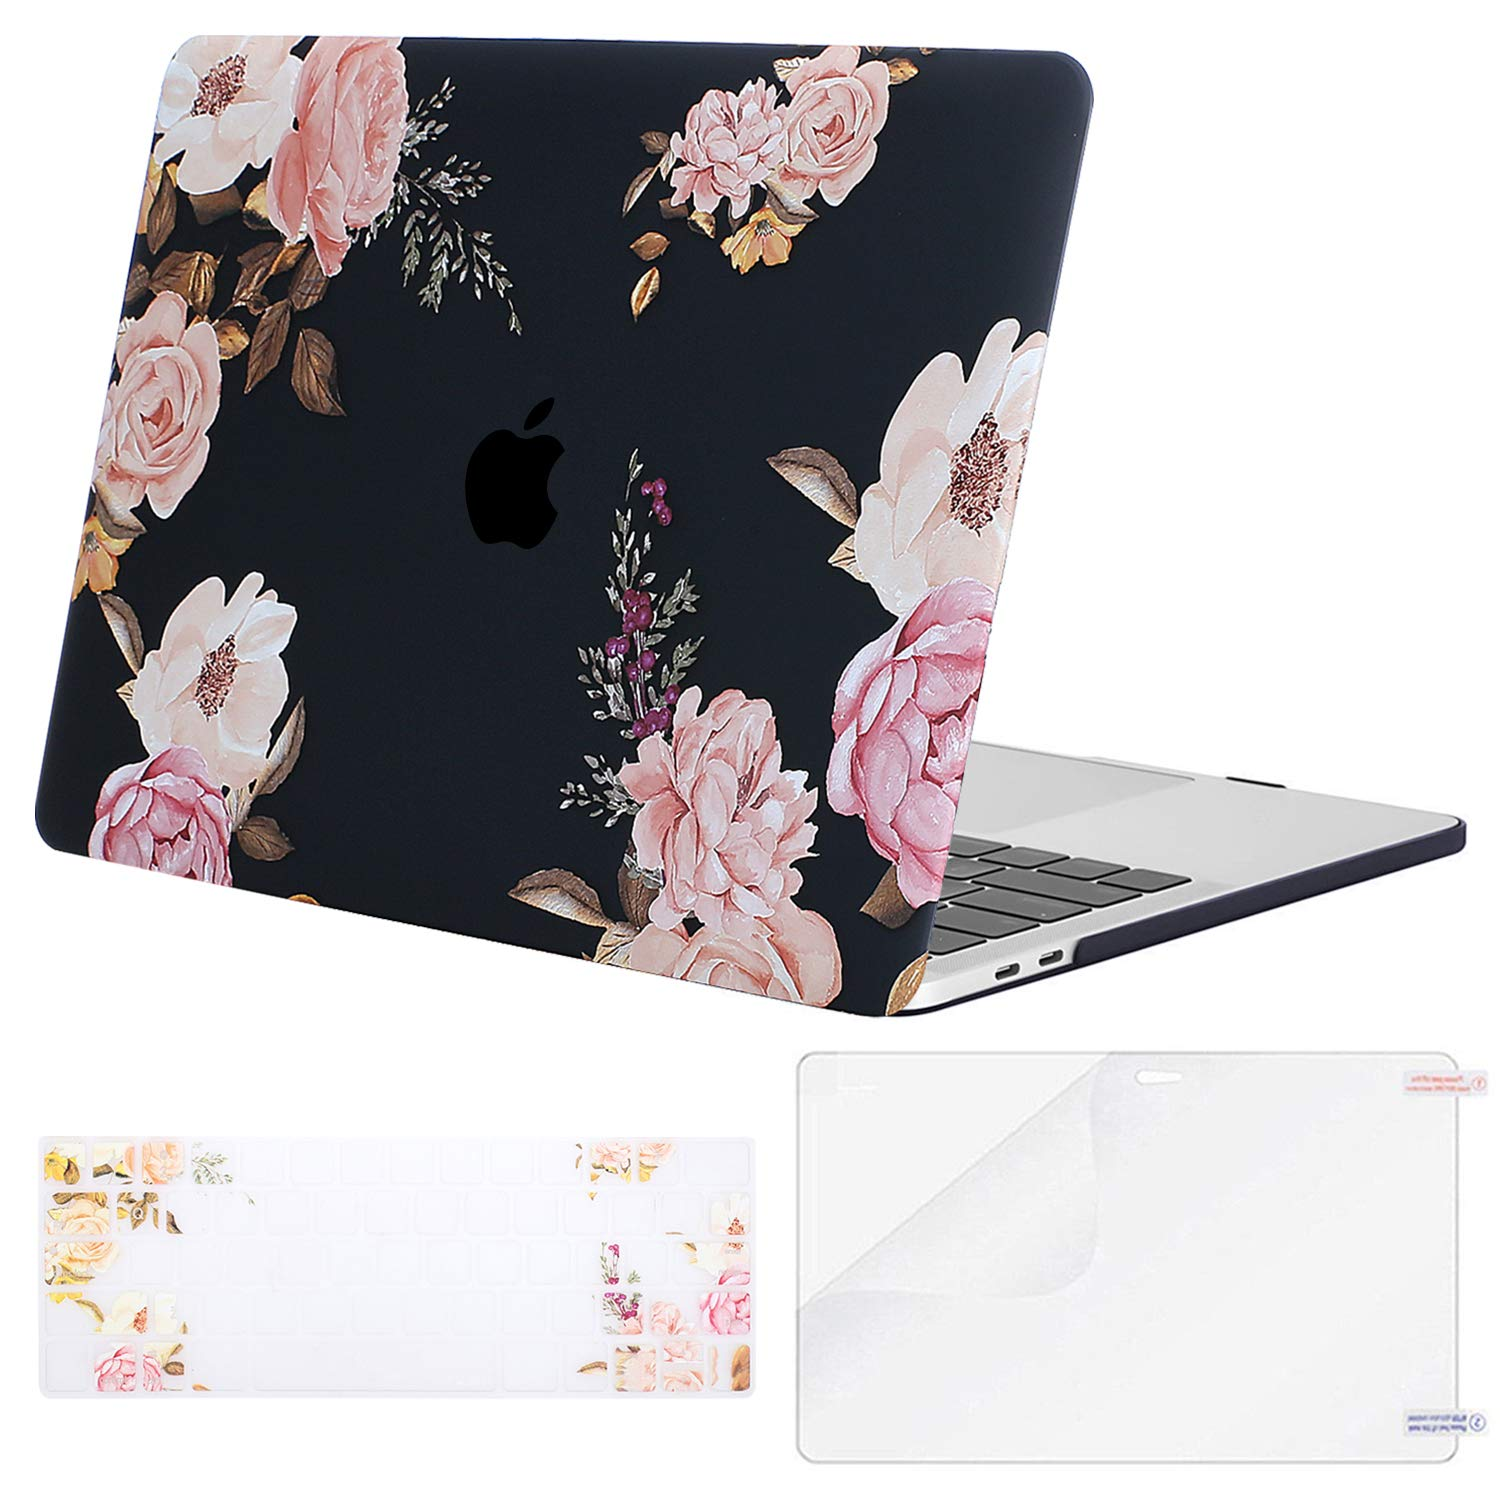 MOSISO MacBook Pro 13 inch Case 2019 2018 2017 2016 Release A2159 A1989 A1706 A1708, Plastic Flower Pattern Hard Case&Keyboard Cover&Screen Protector ...